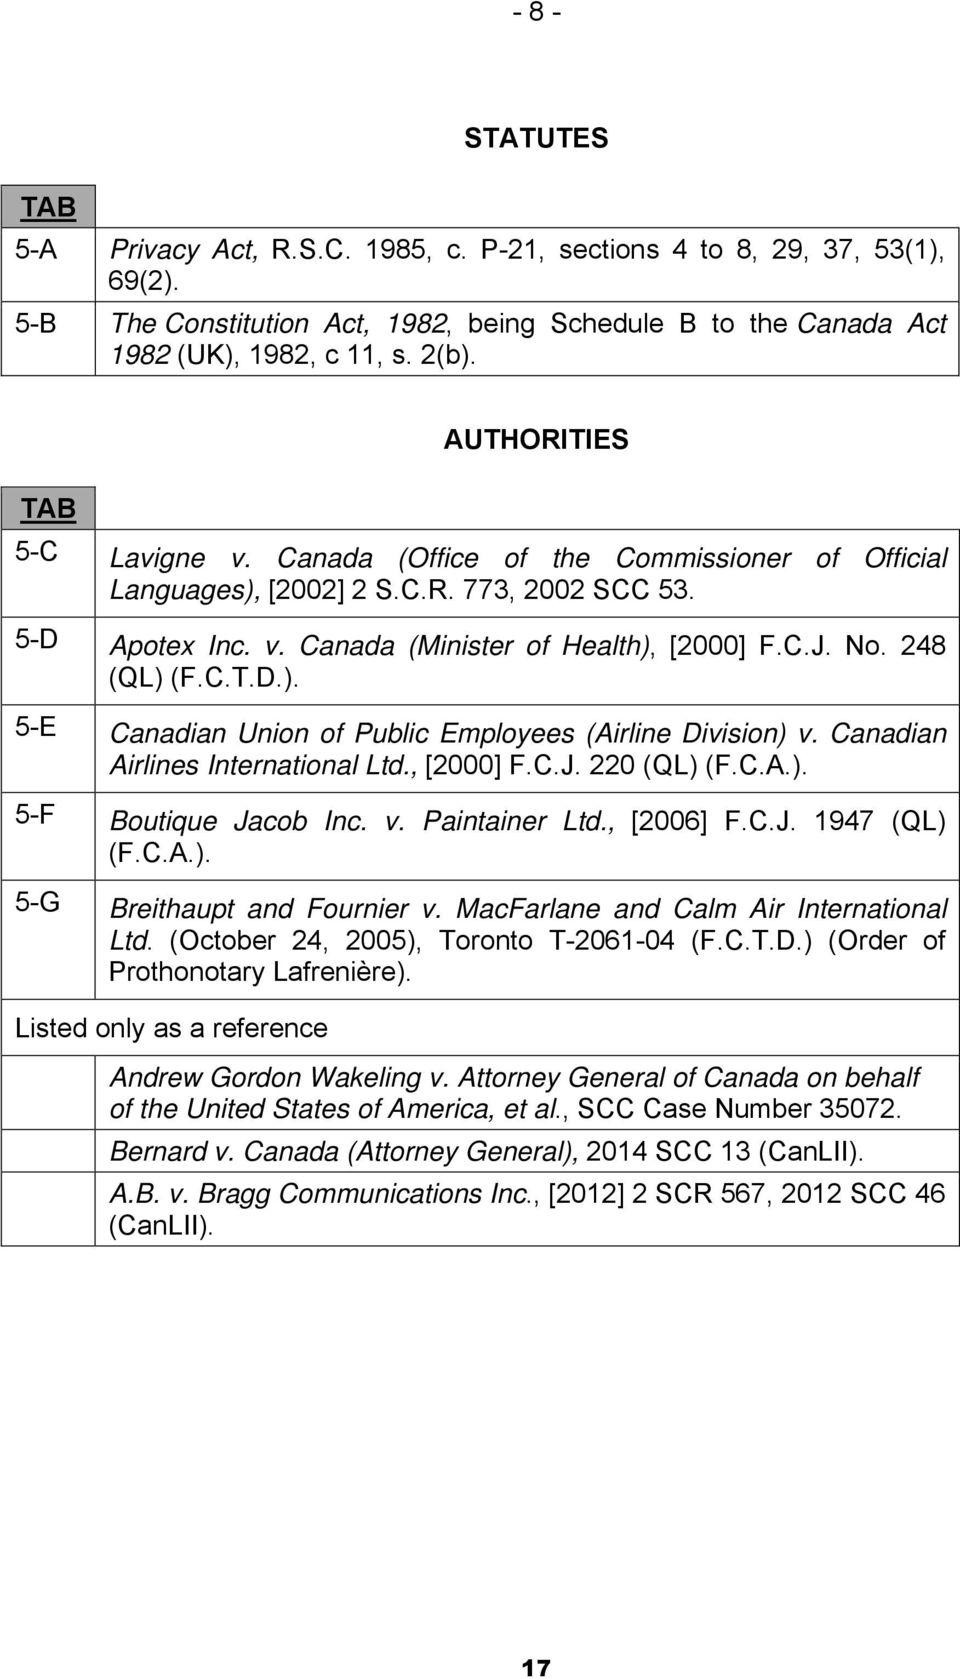 248 (QL) (F.C.T.D.). 5-E Canadian Union of Public Employees (Airline Division) v. Canadian Airlines International Ltd., [2000] F.C.J. 220 (QL) (F.C.A.). 5-F Boutique Jacob Inc. v. Paintainer Ltd.